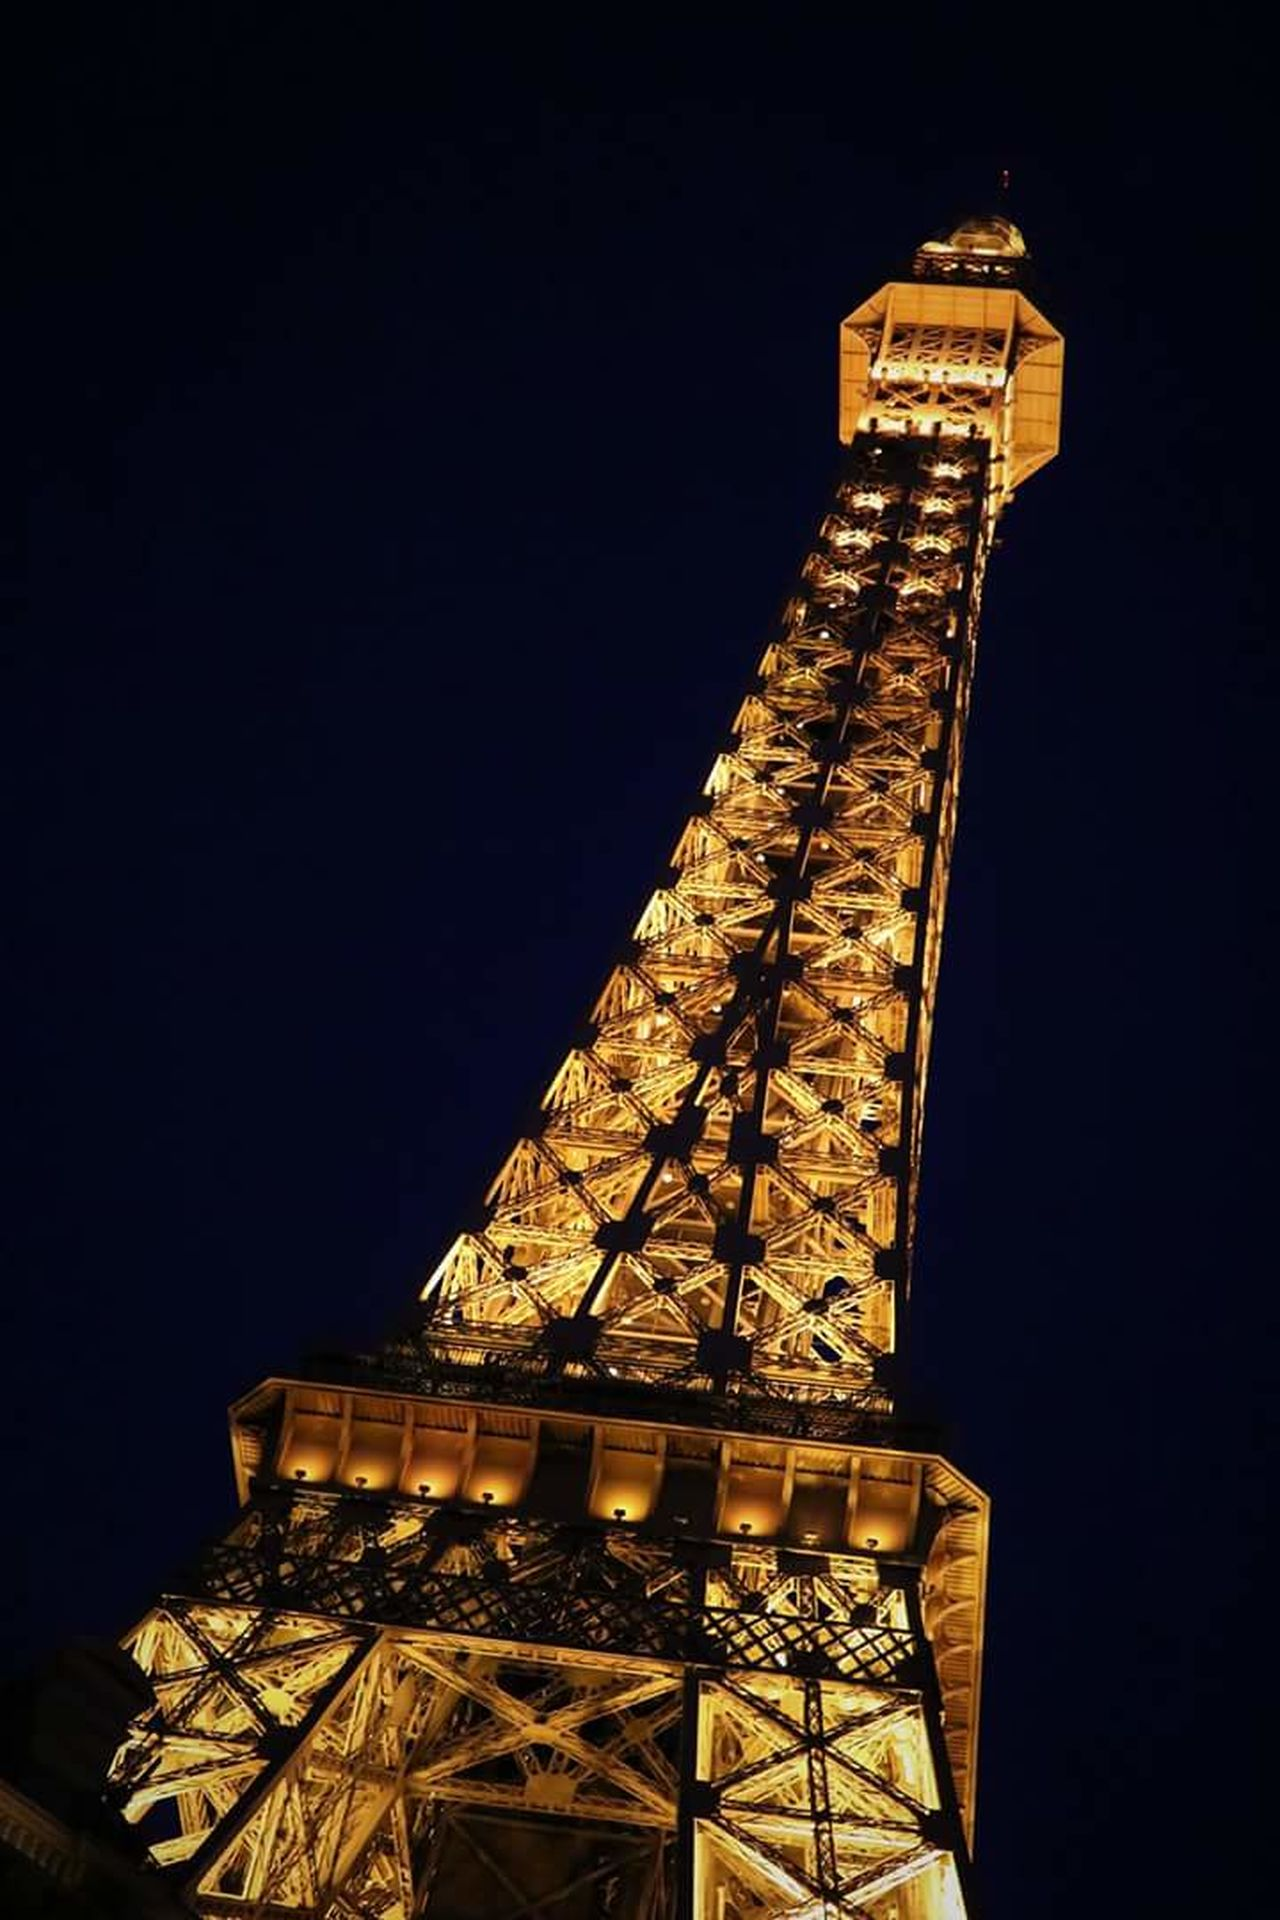 Tower City Gold Sky Tourism Effiel Tower Las Vegas Documentary Photography Nighttime Photography